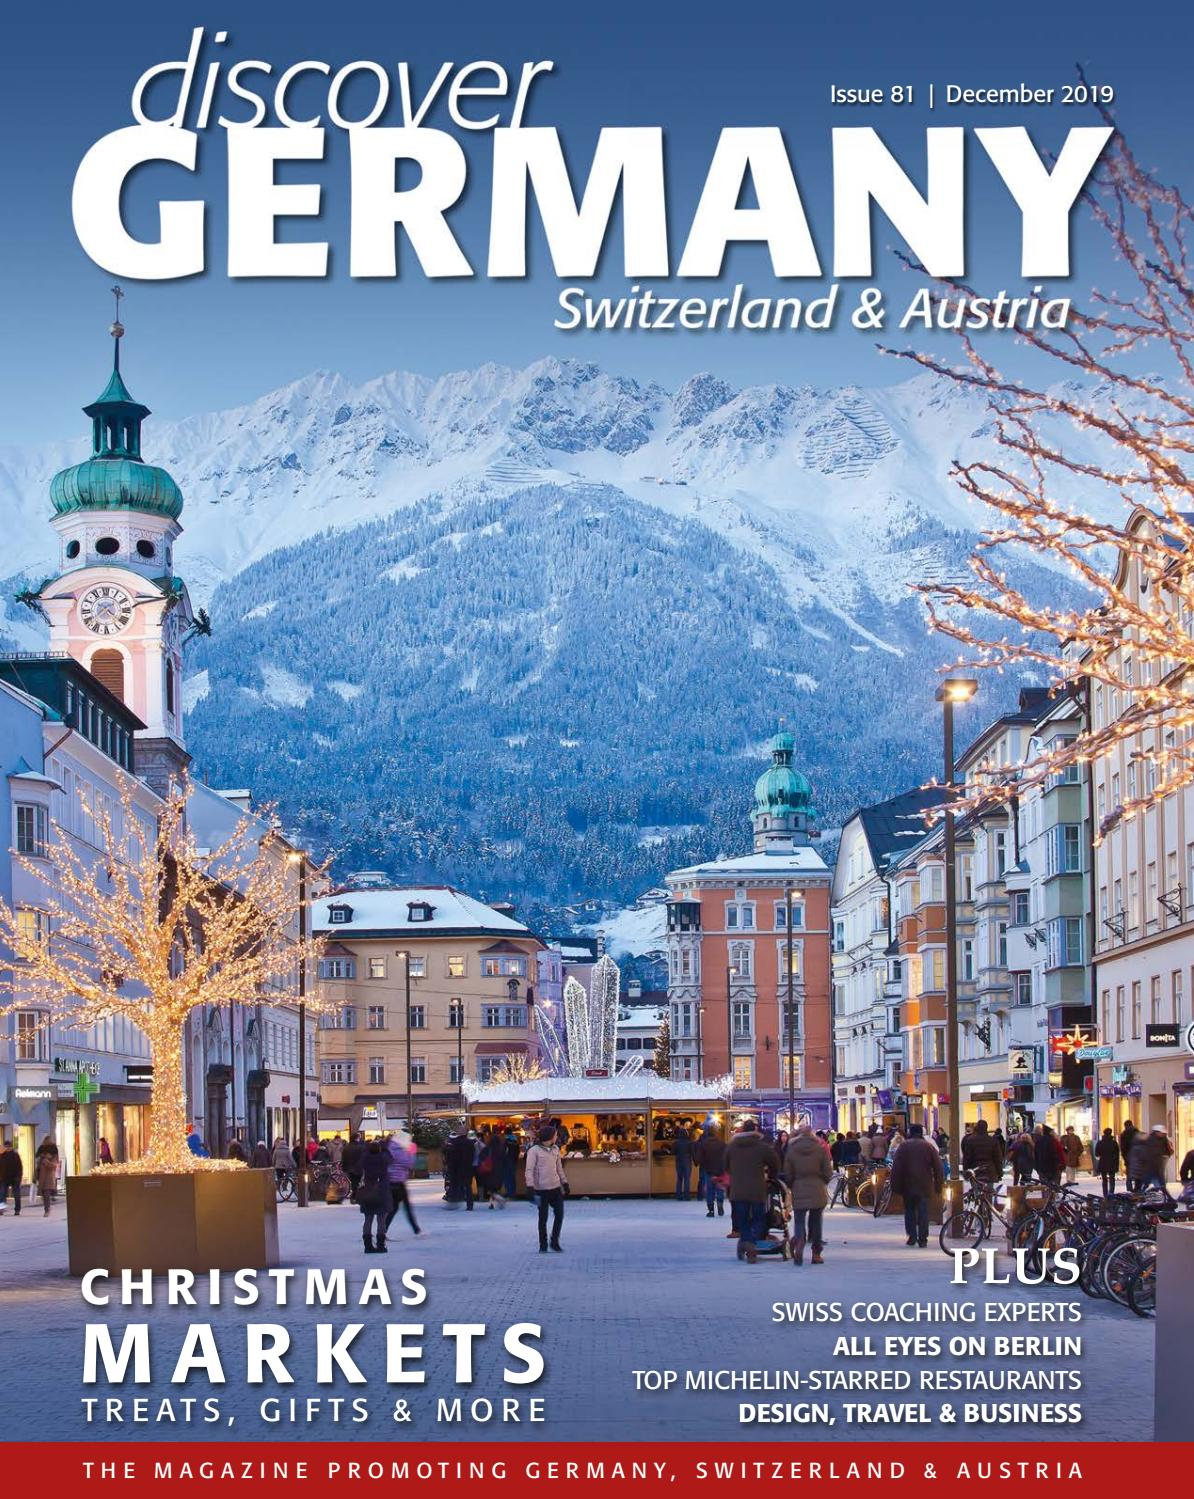 Discover Germany Issue 81 December 2019 By Scan Client Publishing Issuu